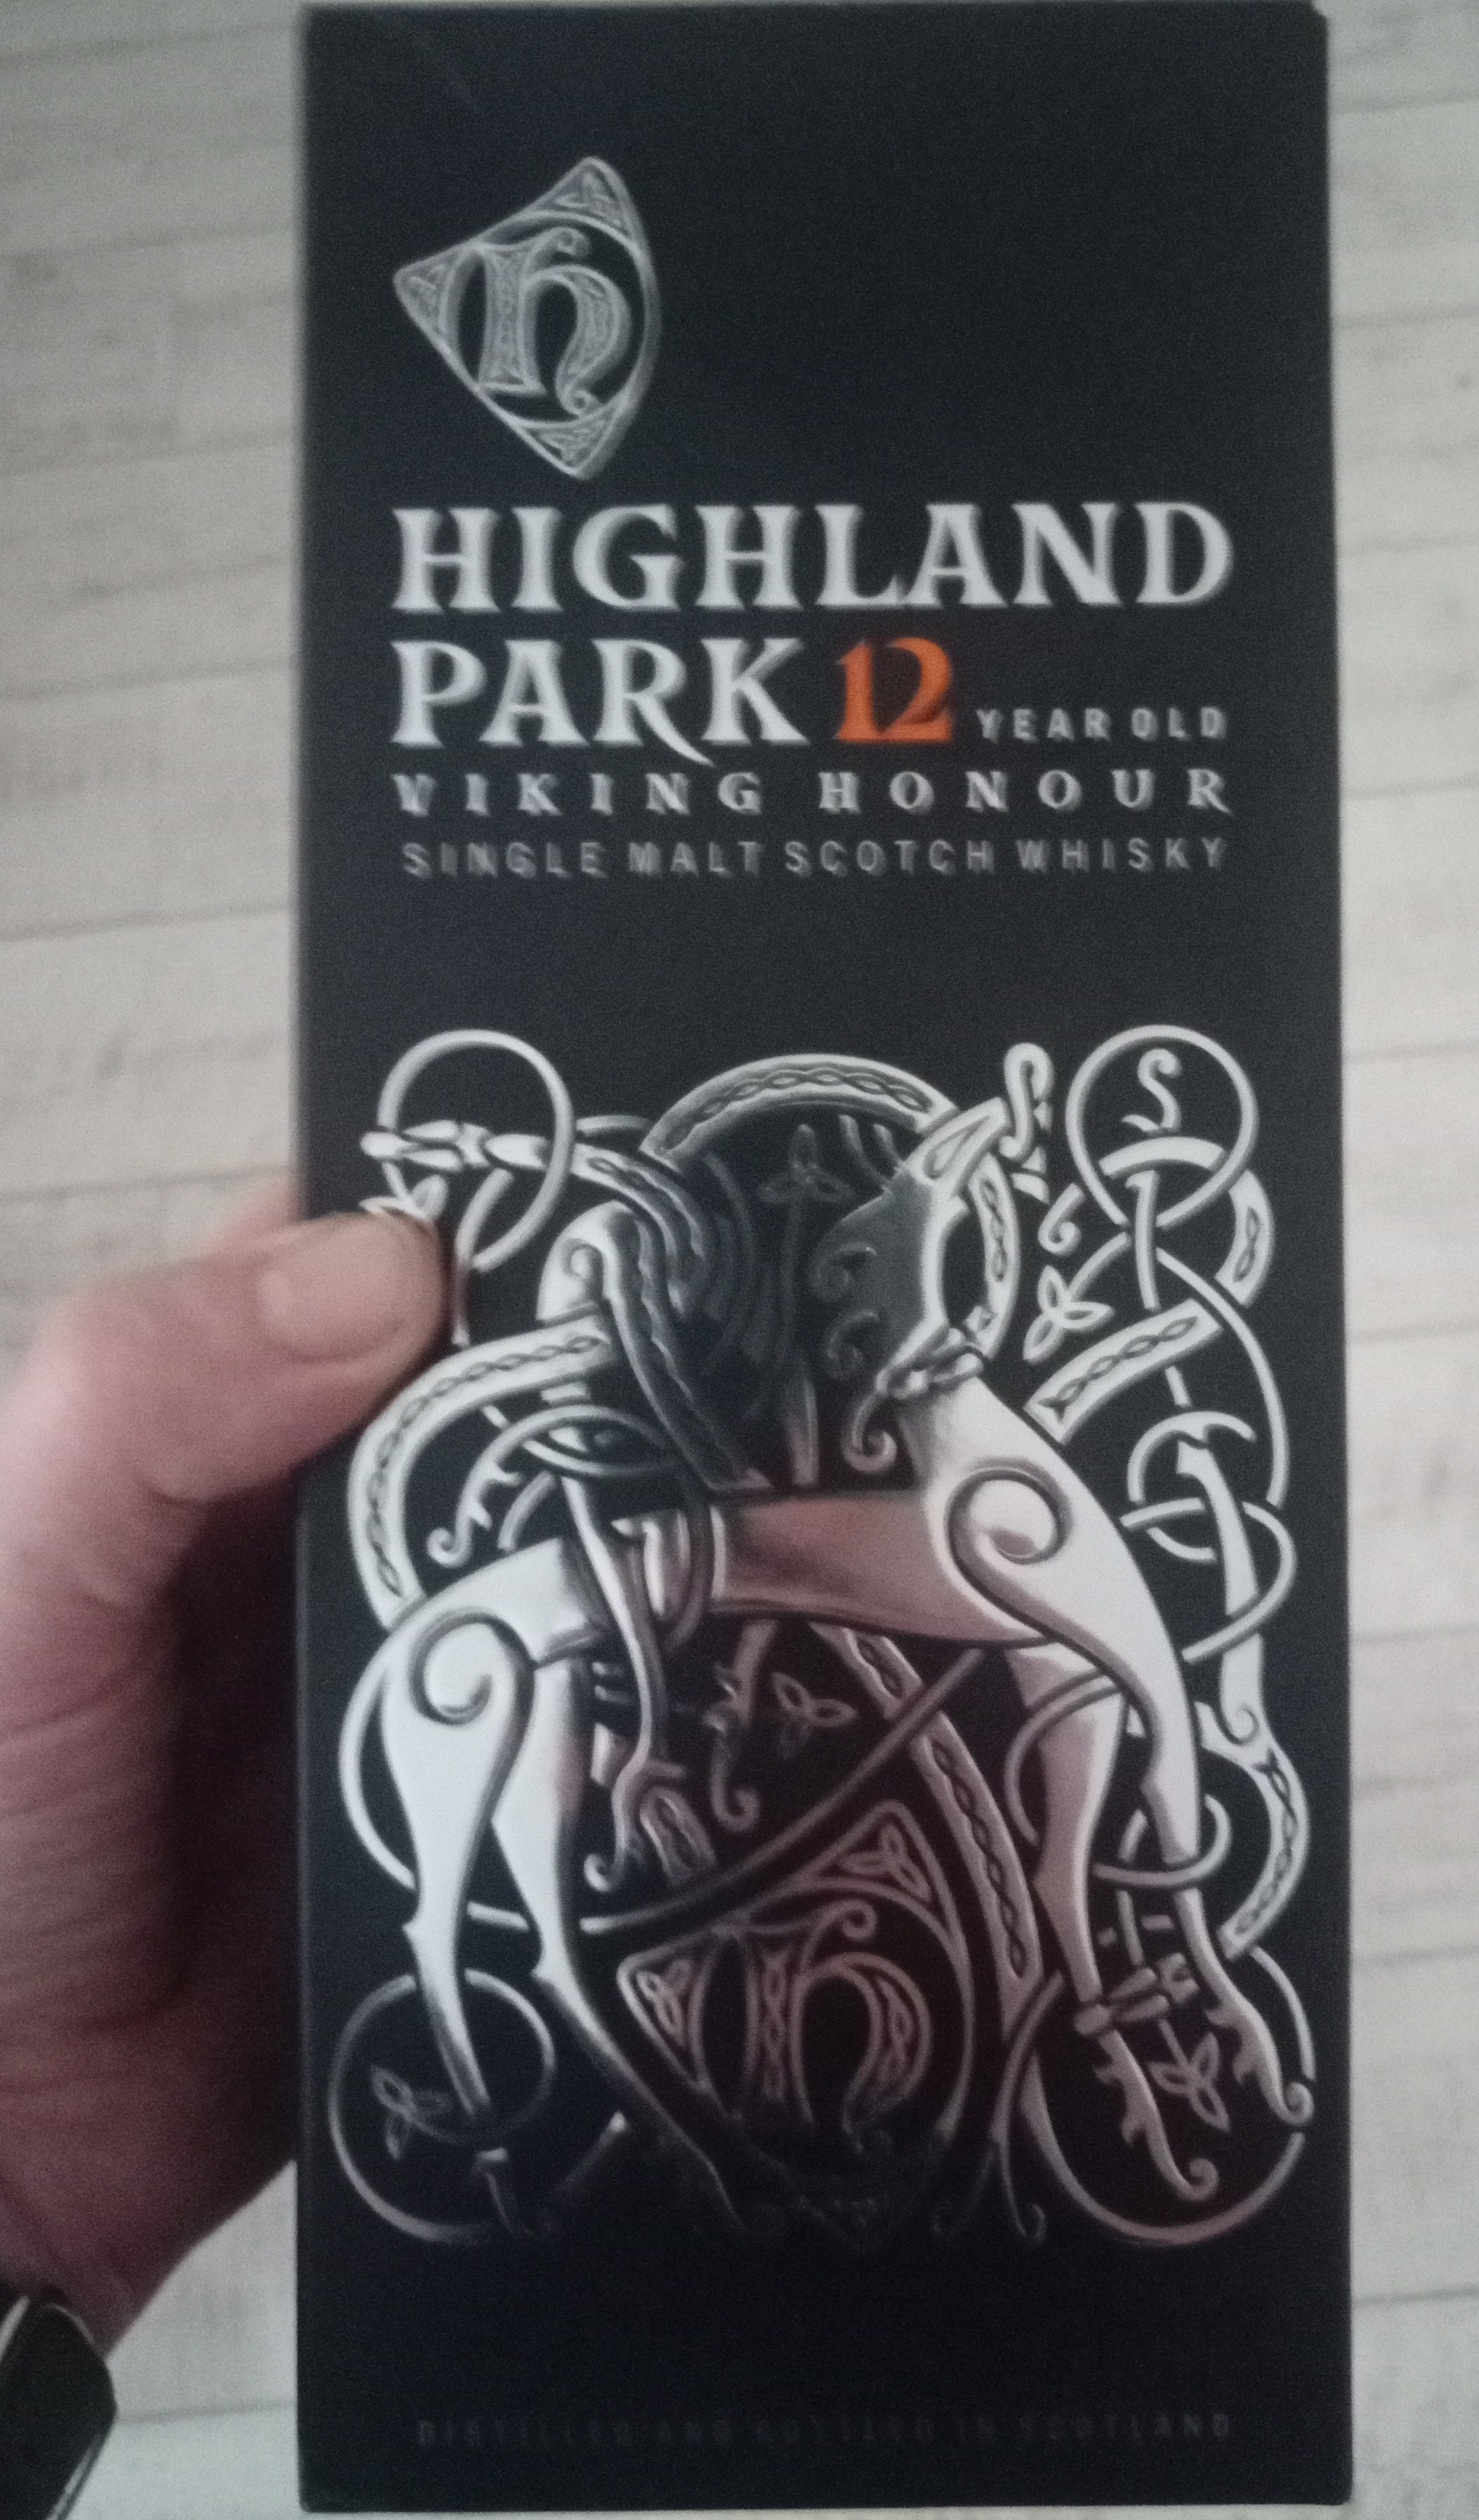 Read more about the article Highland Park 12 year old Viking Honour